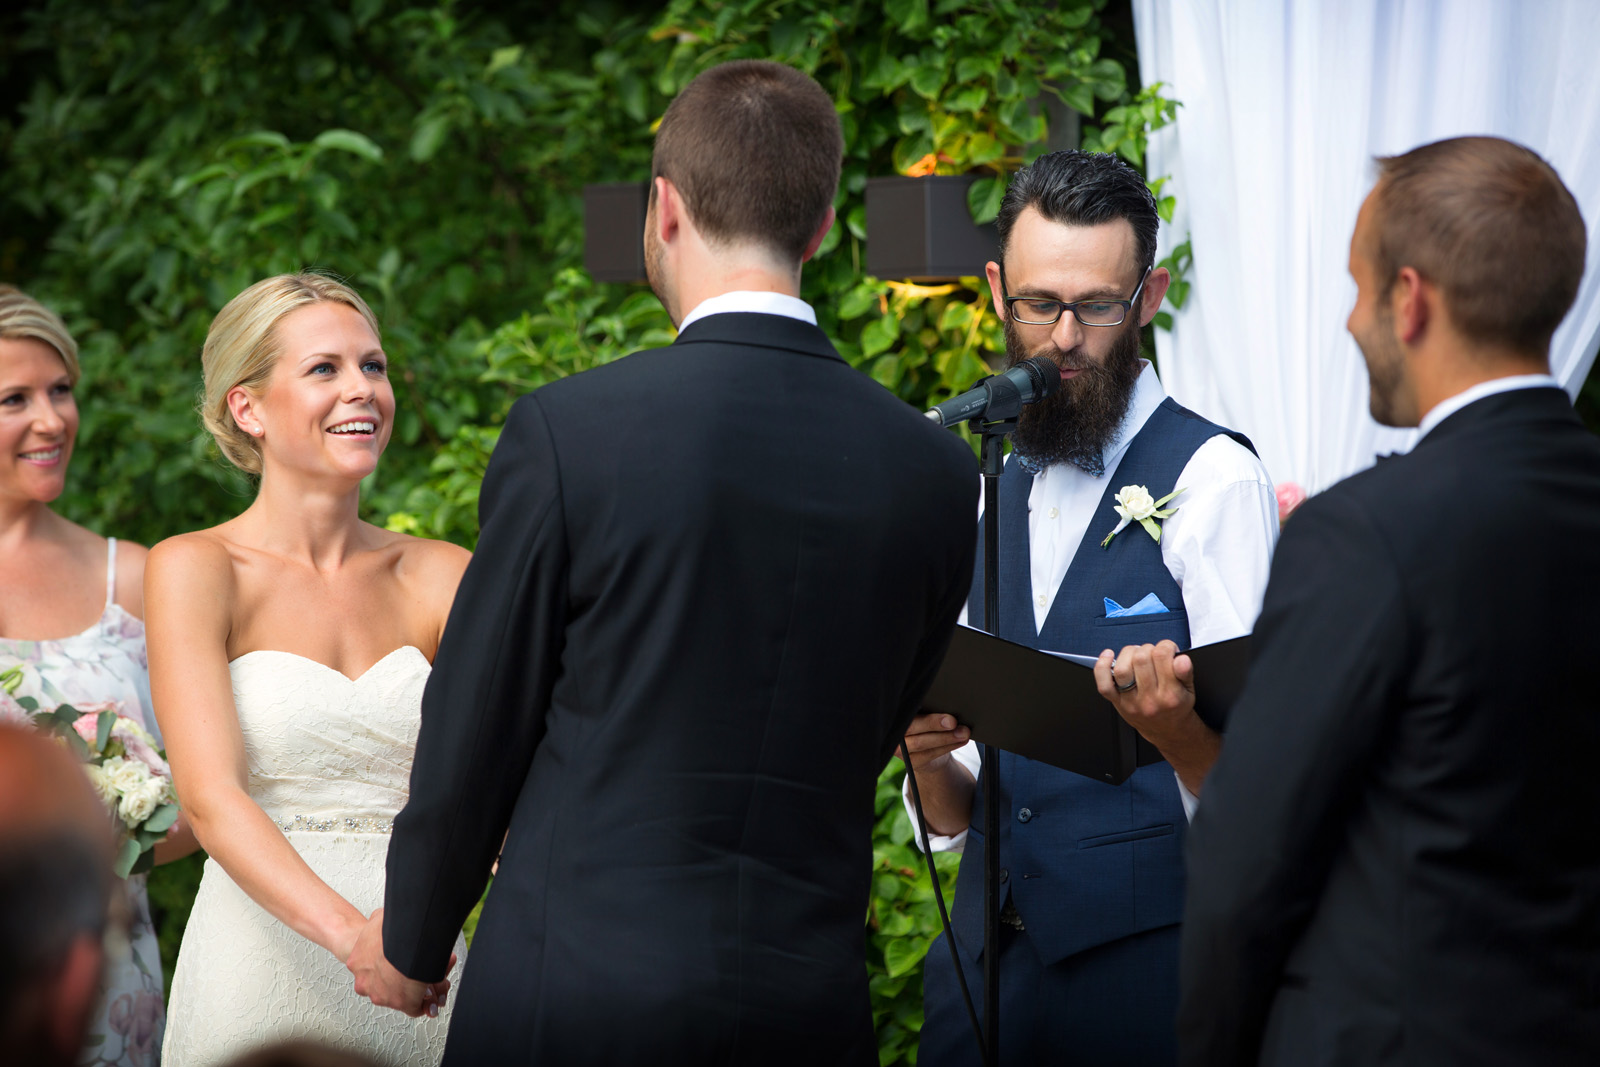 Wedding vows at outdoor ceremony at Galleria Marchetti